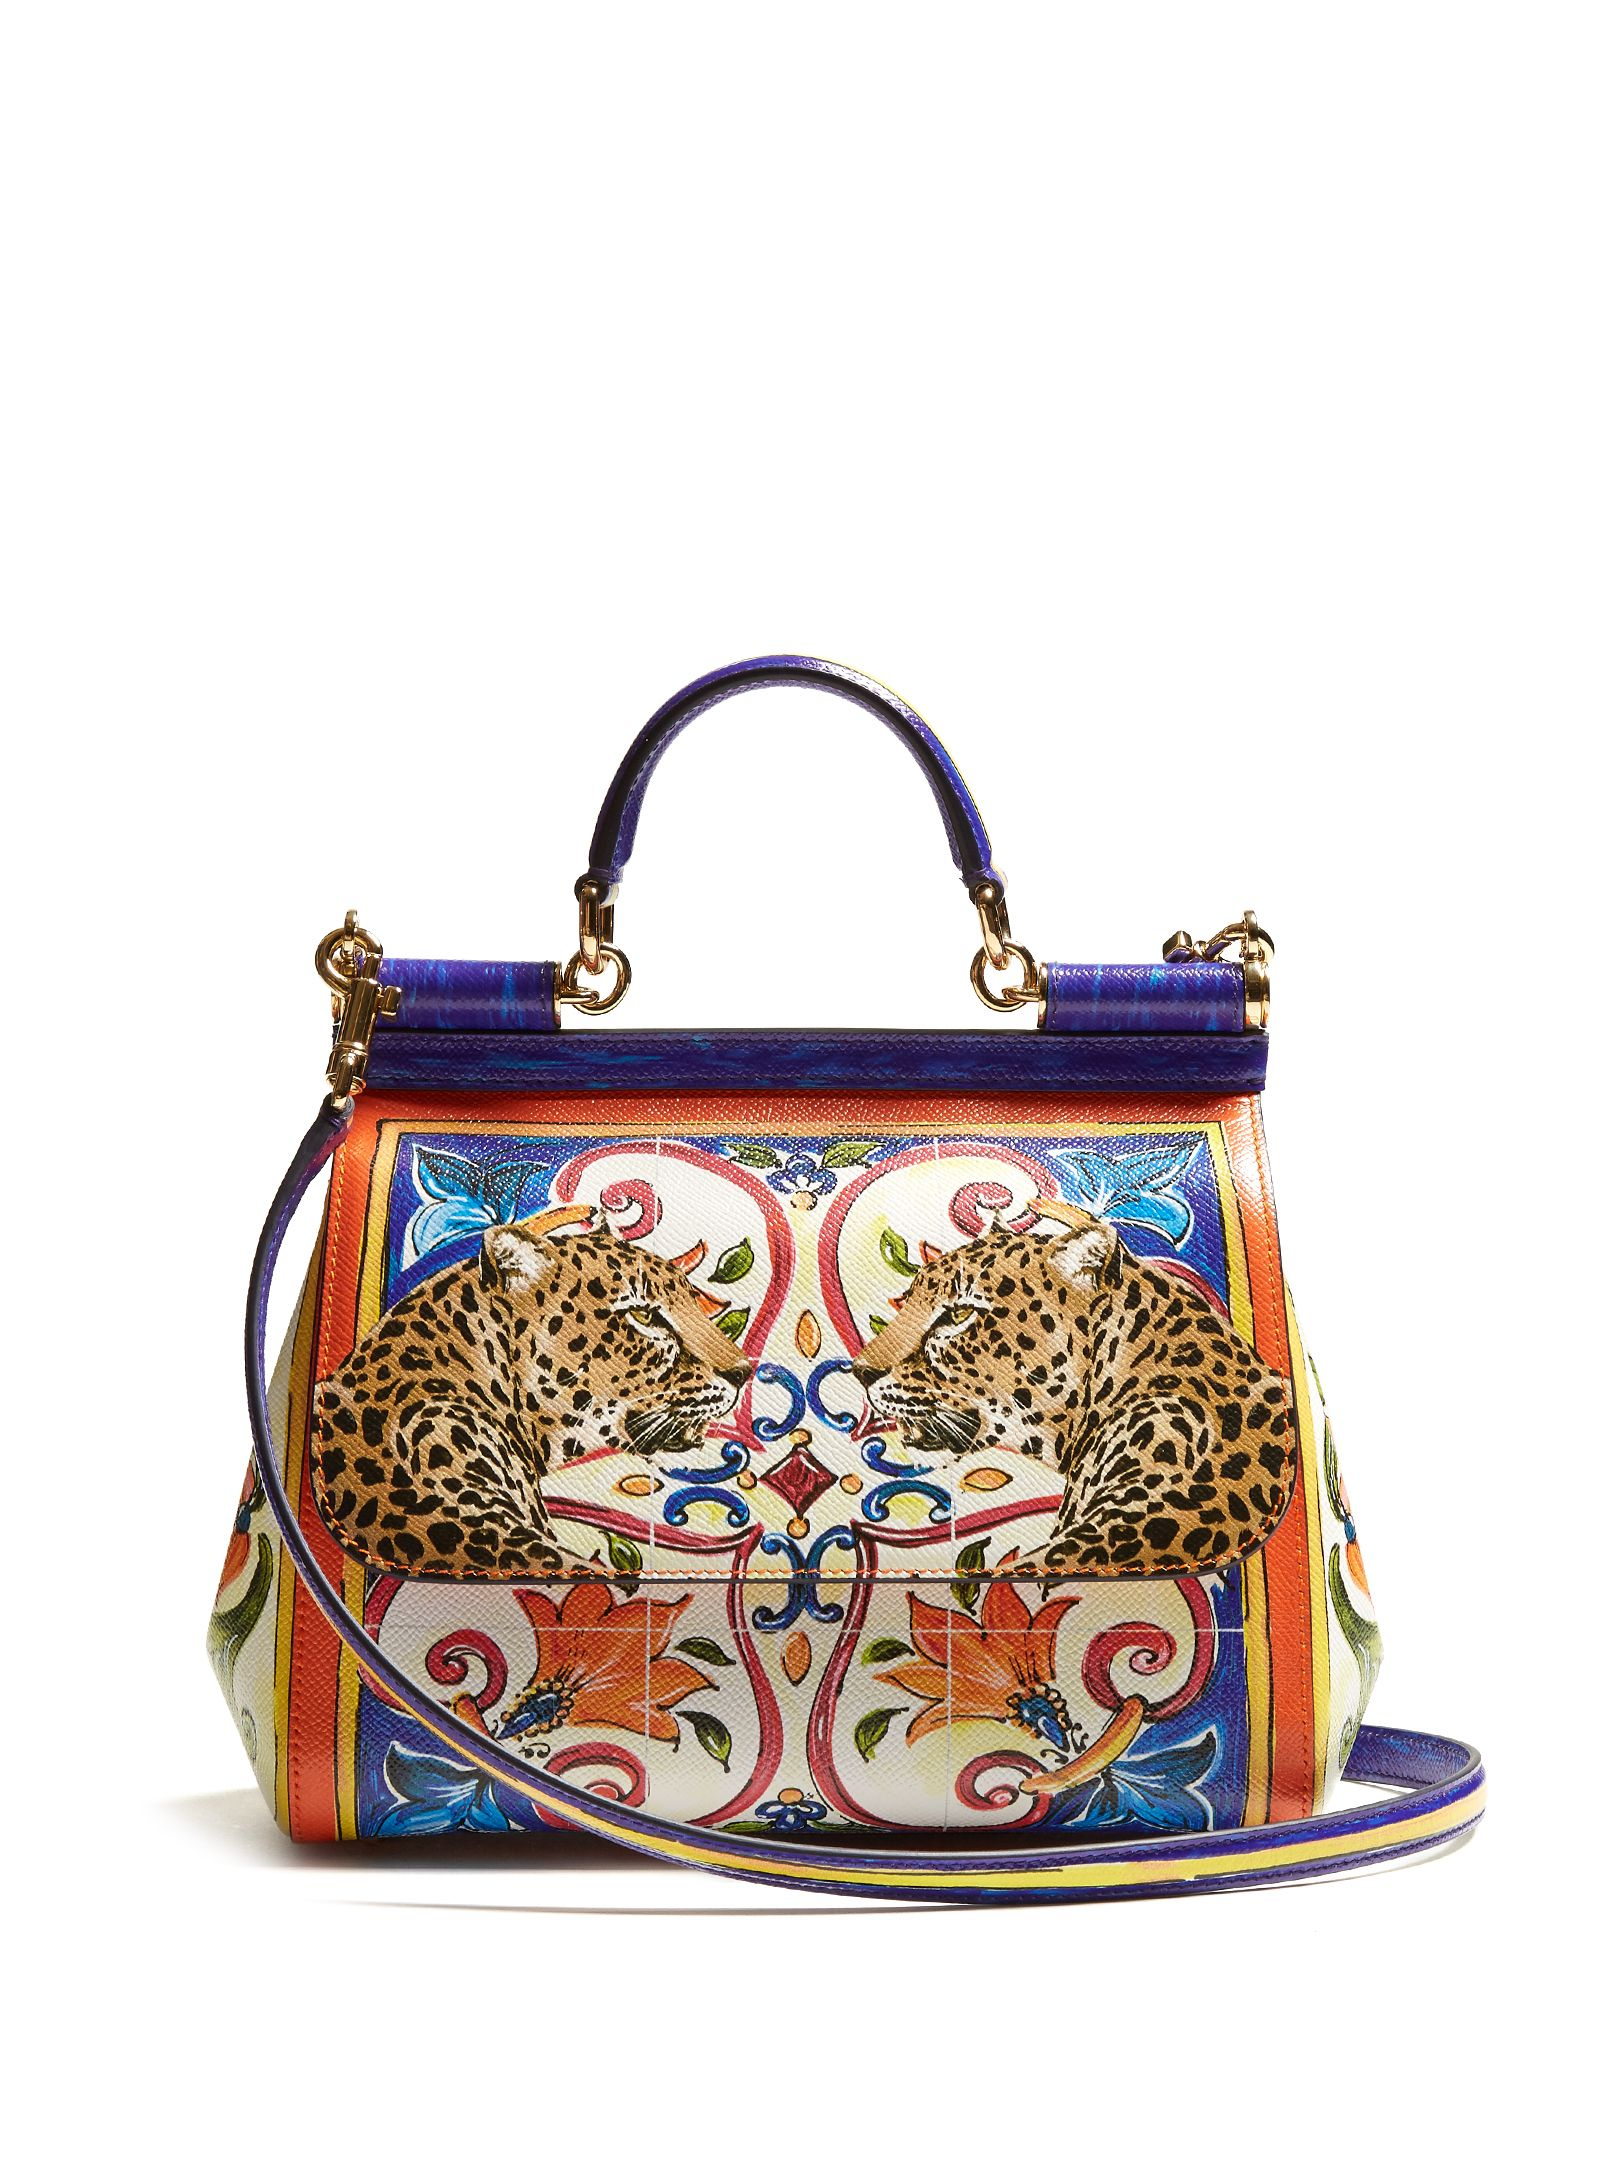 Sicily medium Majolica-print leather bag   Dolce   Gabbana    MATCHESFASHION.COM UK. Find this Pin and more on bizarre bags ... 48cb00c651